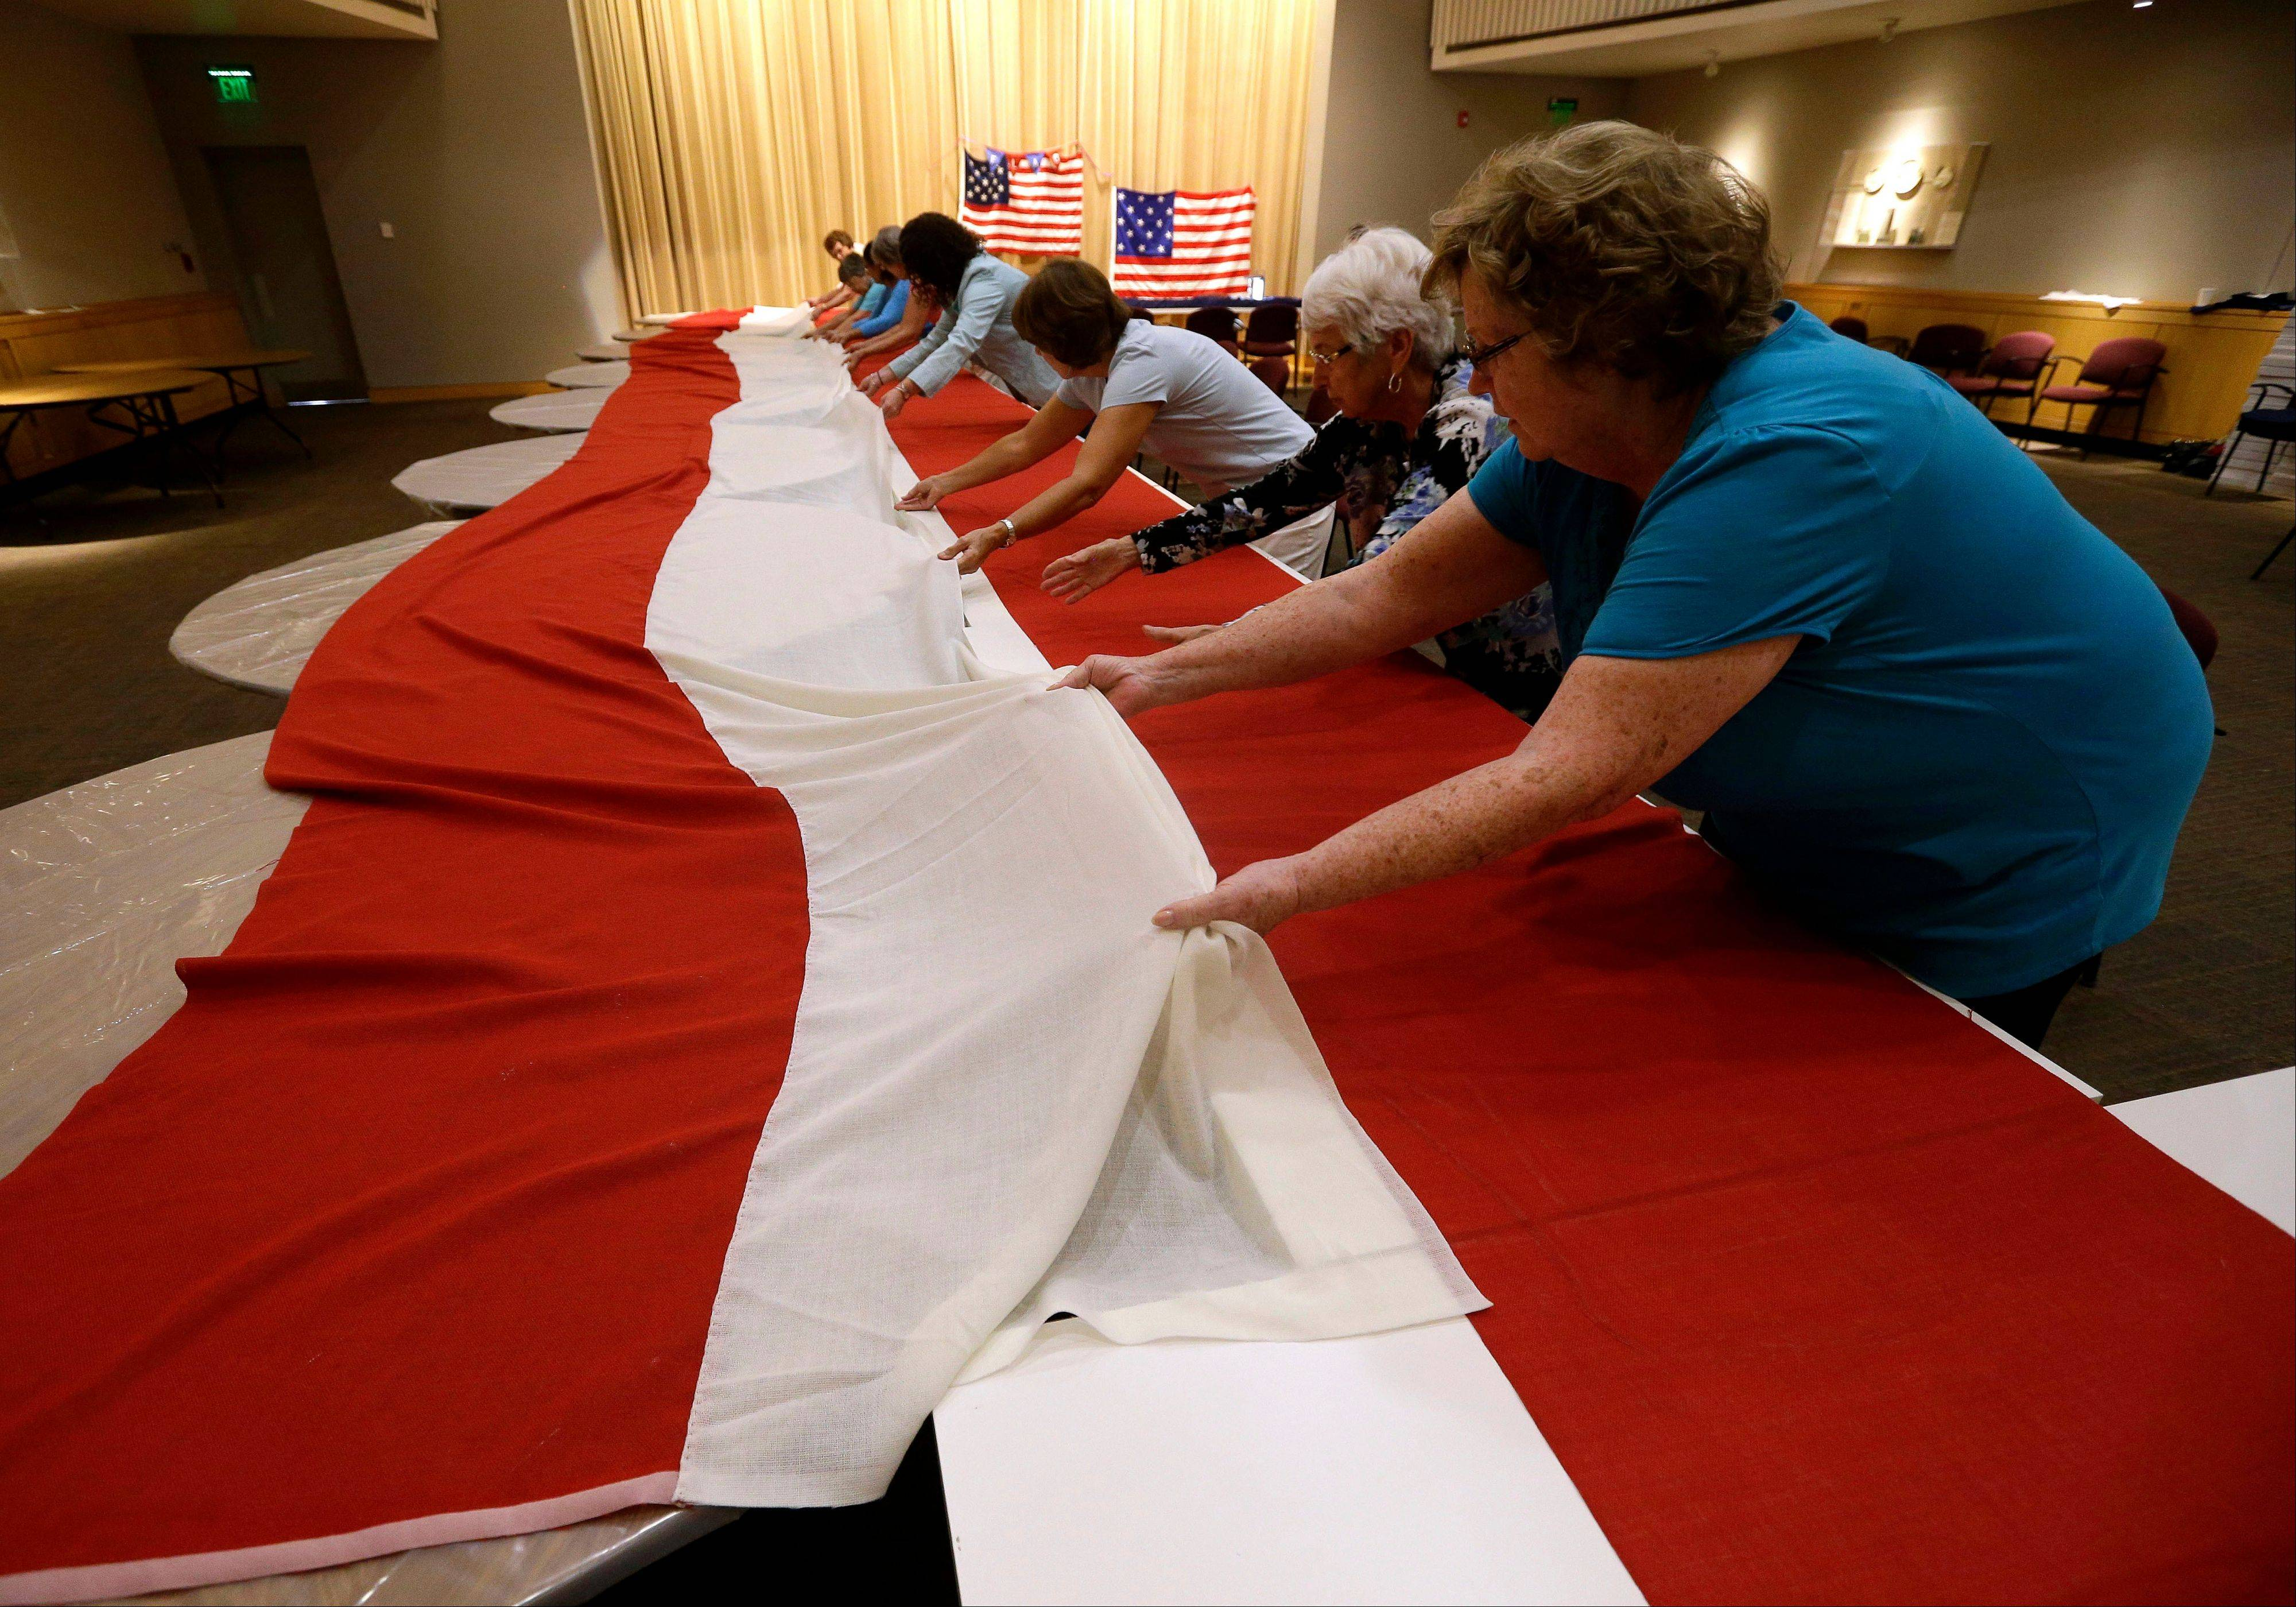 Volunteers line up stripes that, when hand-stitched together, will be part of a replica of the star-spangled banner.